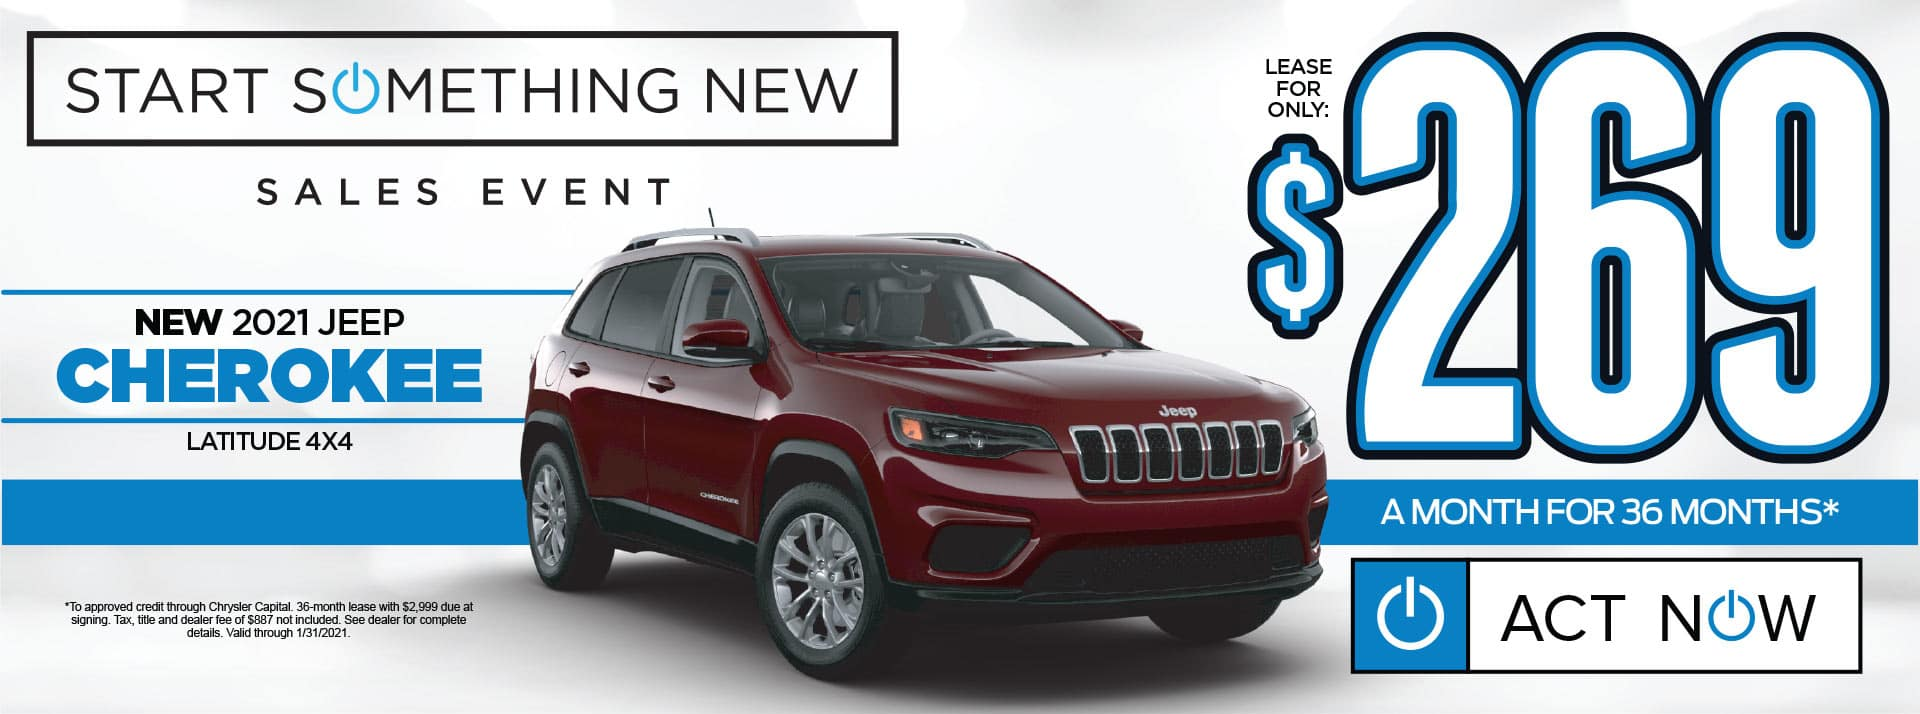 NEW 2021 JEEP CHEROKEE LEASE FOR $269/MO* SHOP NOW